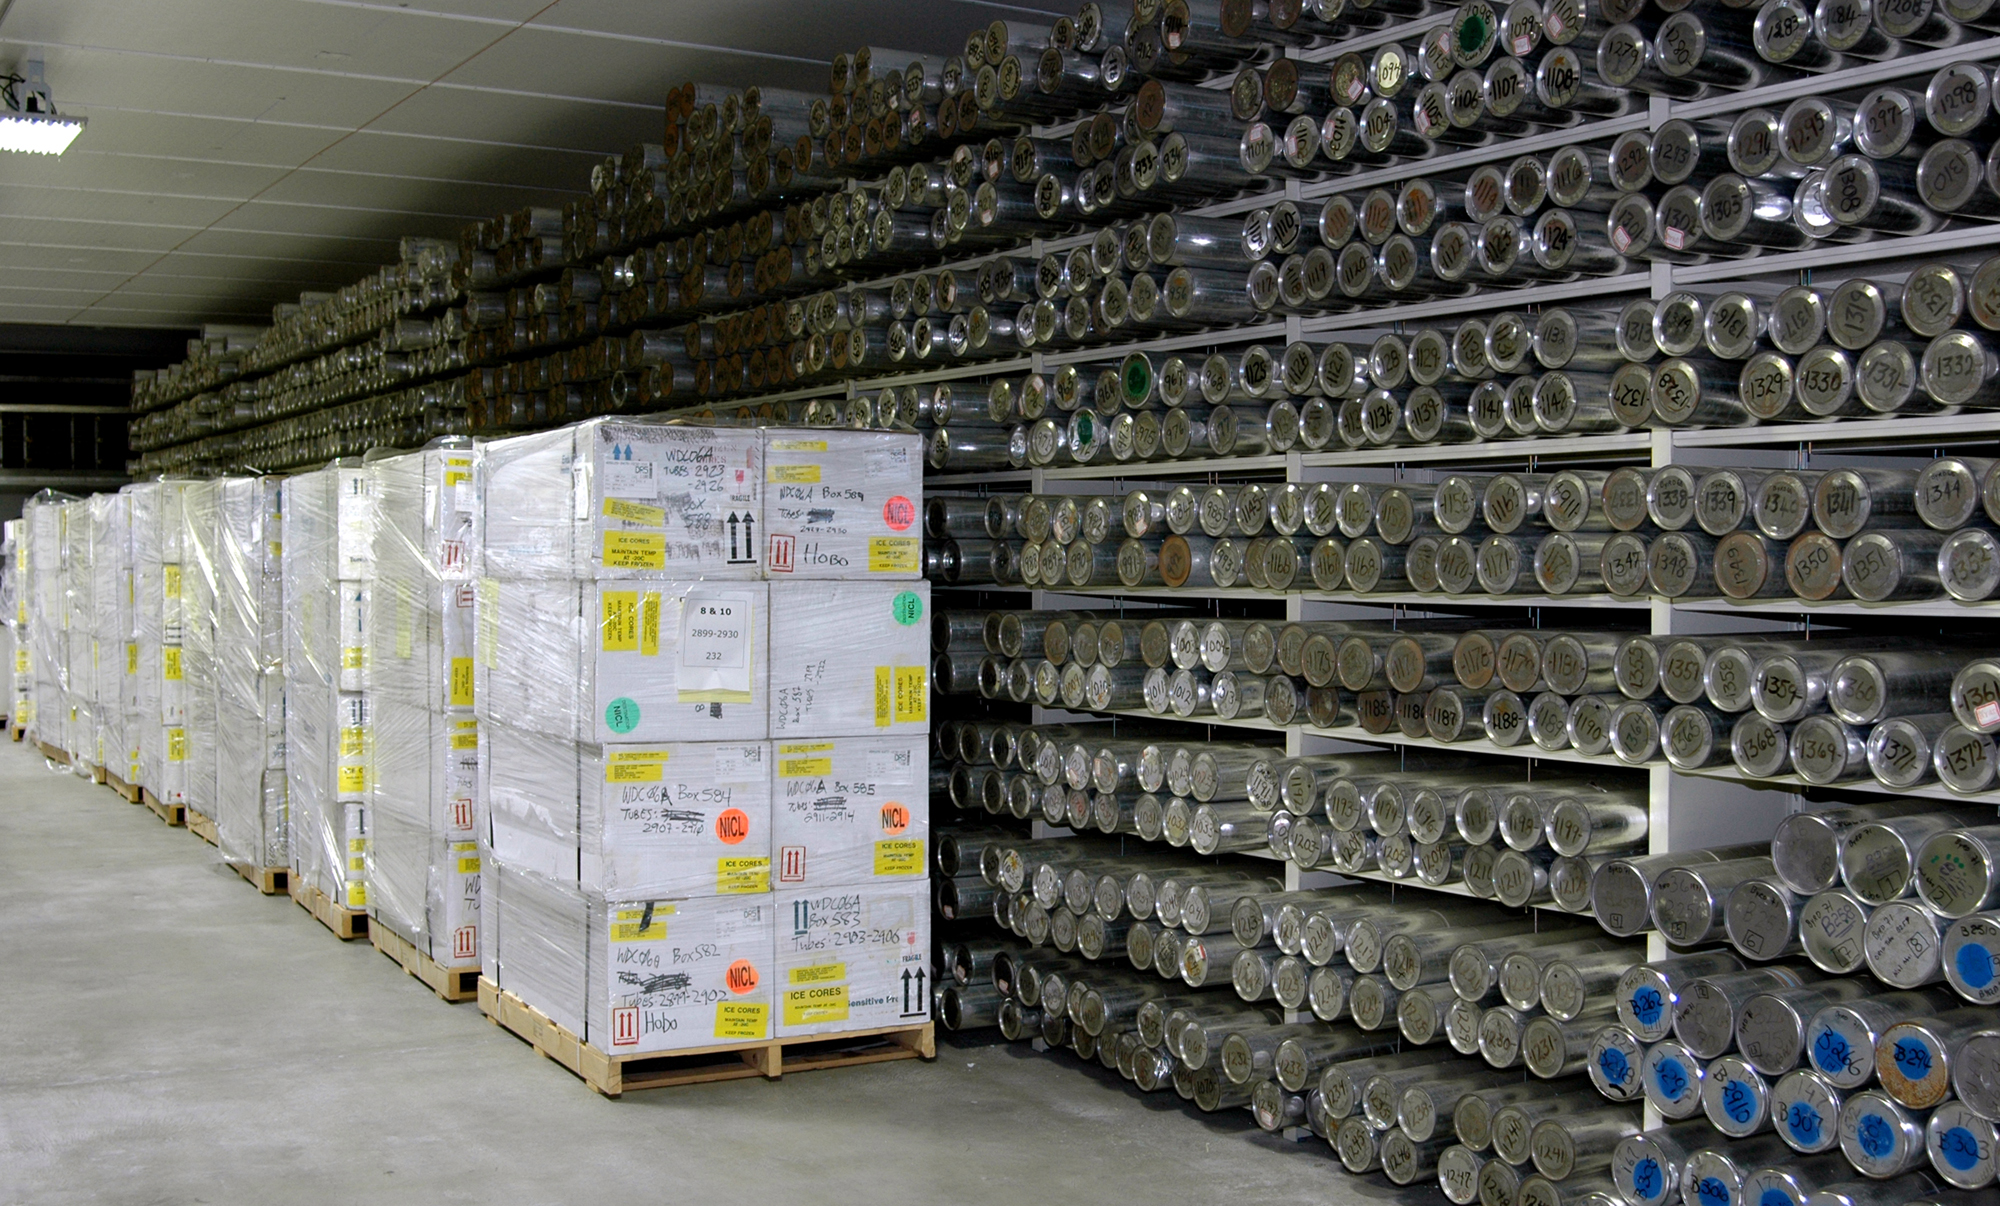 Each silver tube on these shelves contains a 1-meter long section of an ice core